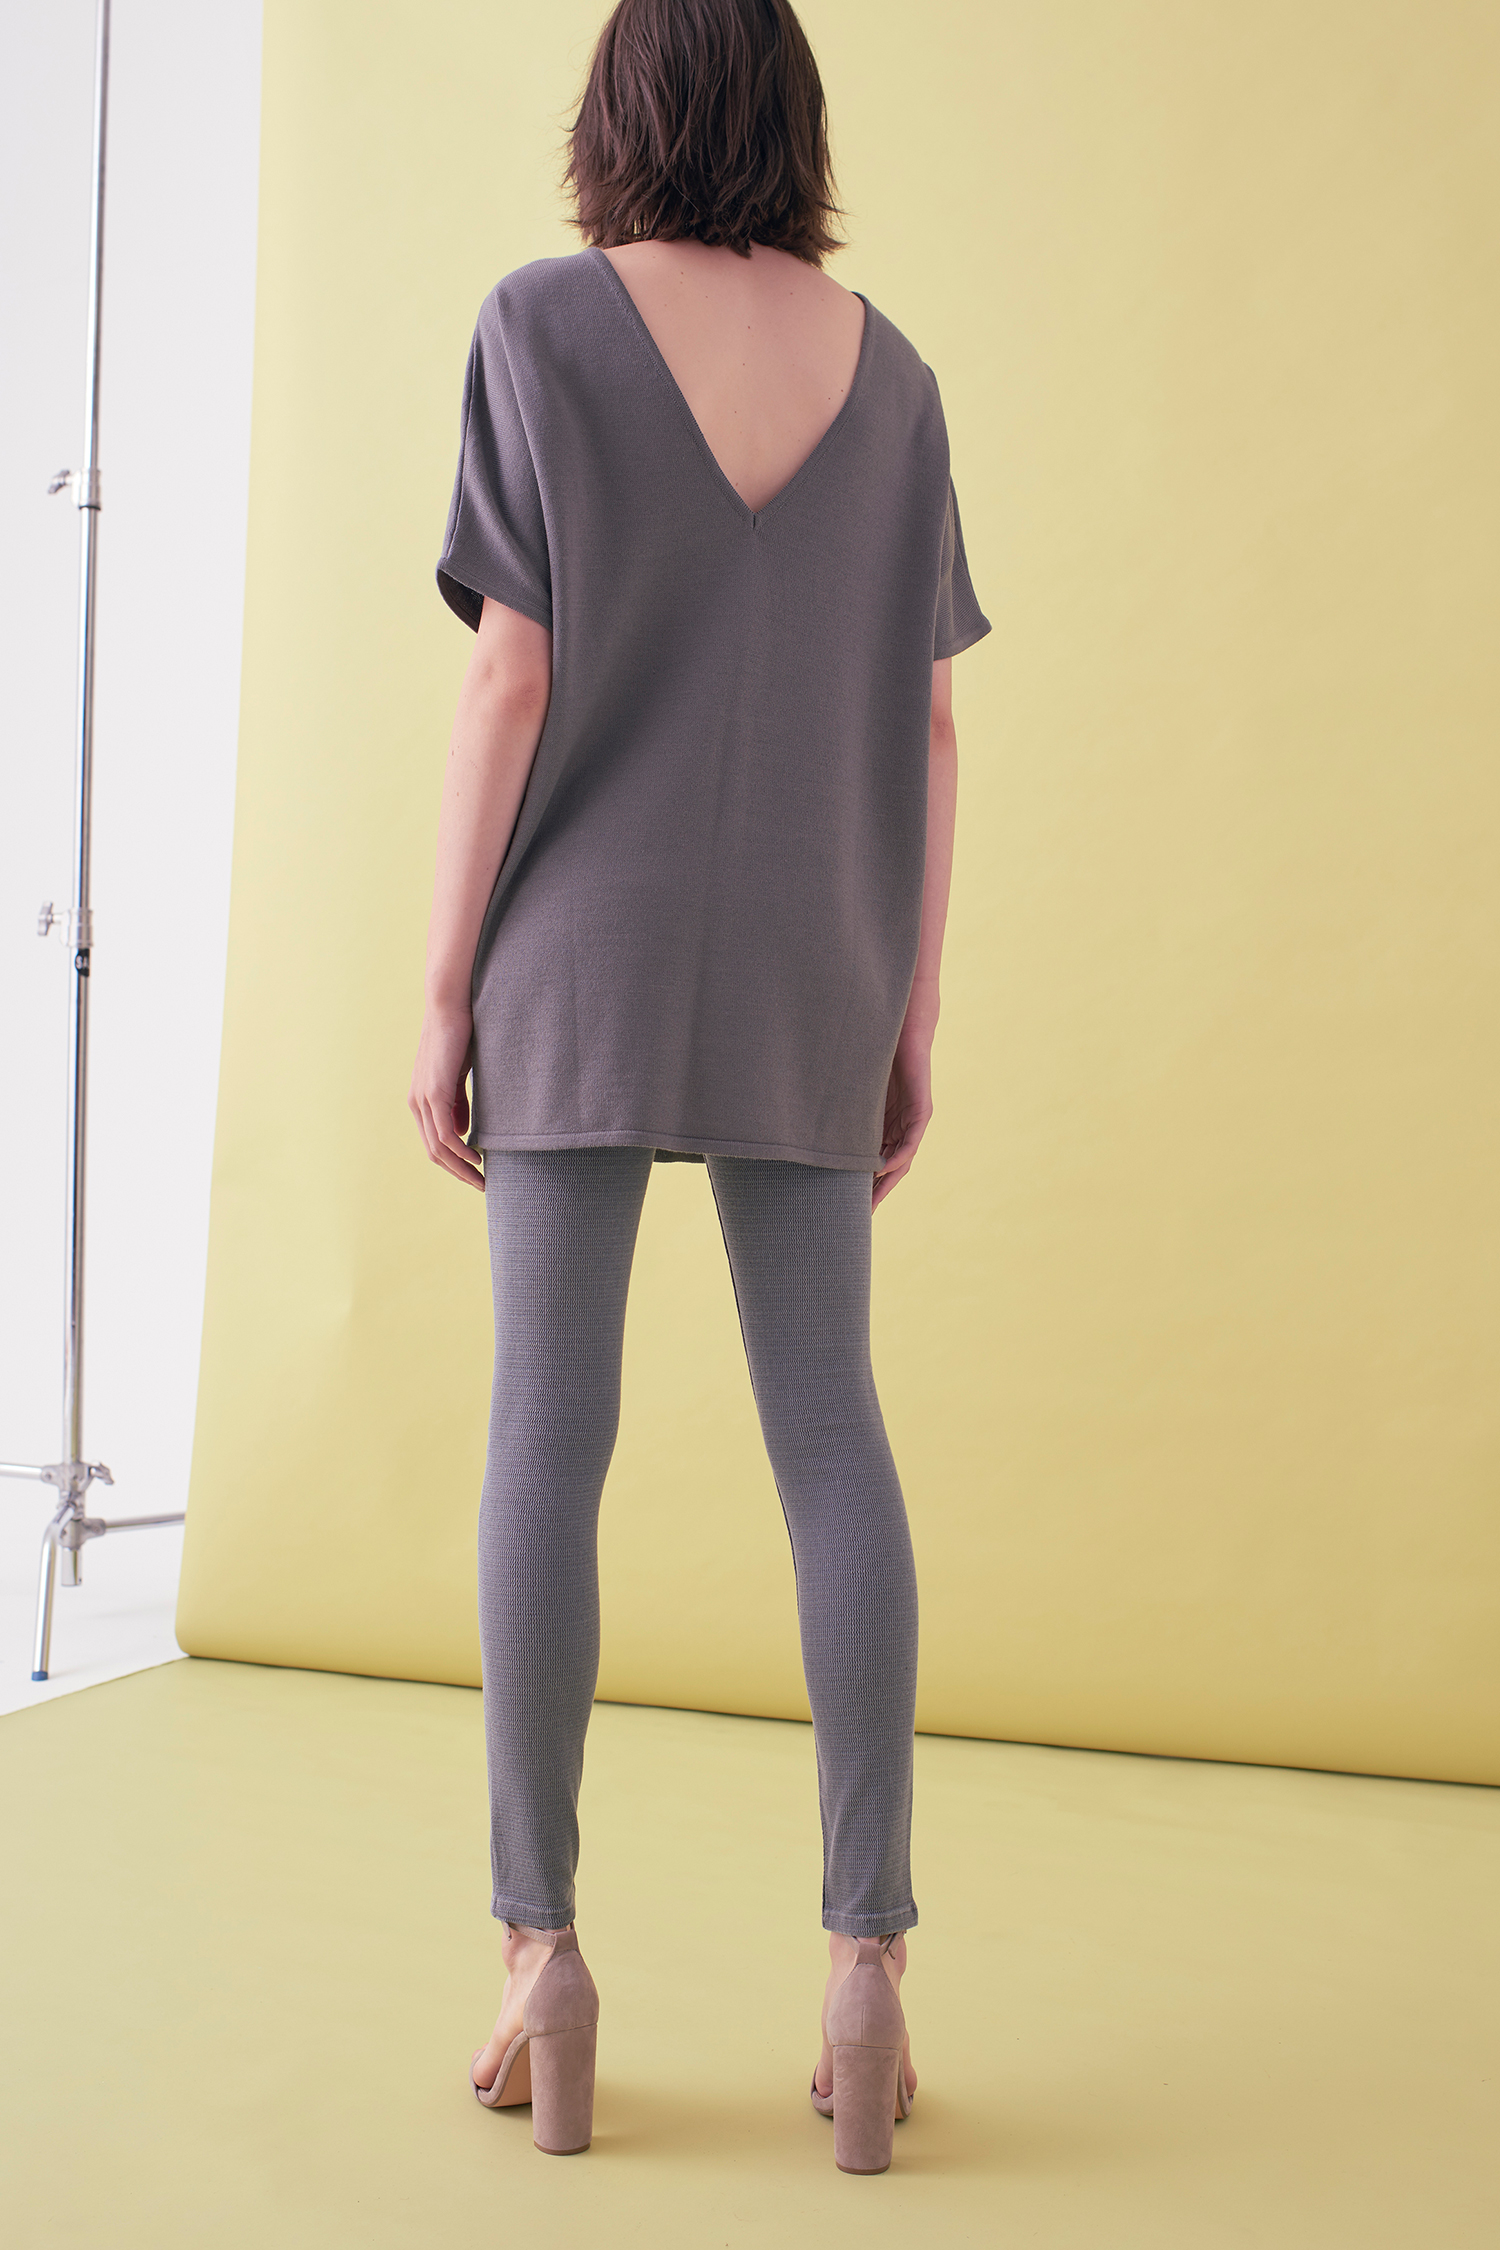 Sarah_Swann_SS17_07_Suede_And_Knit_Sweater_Pewter_B.jpg